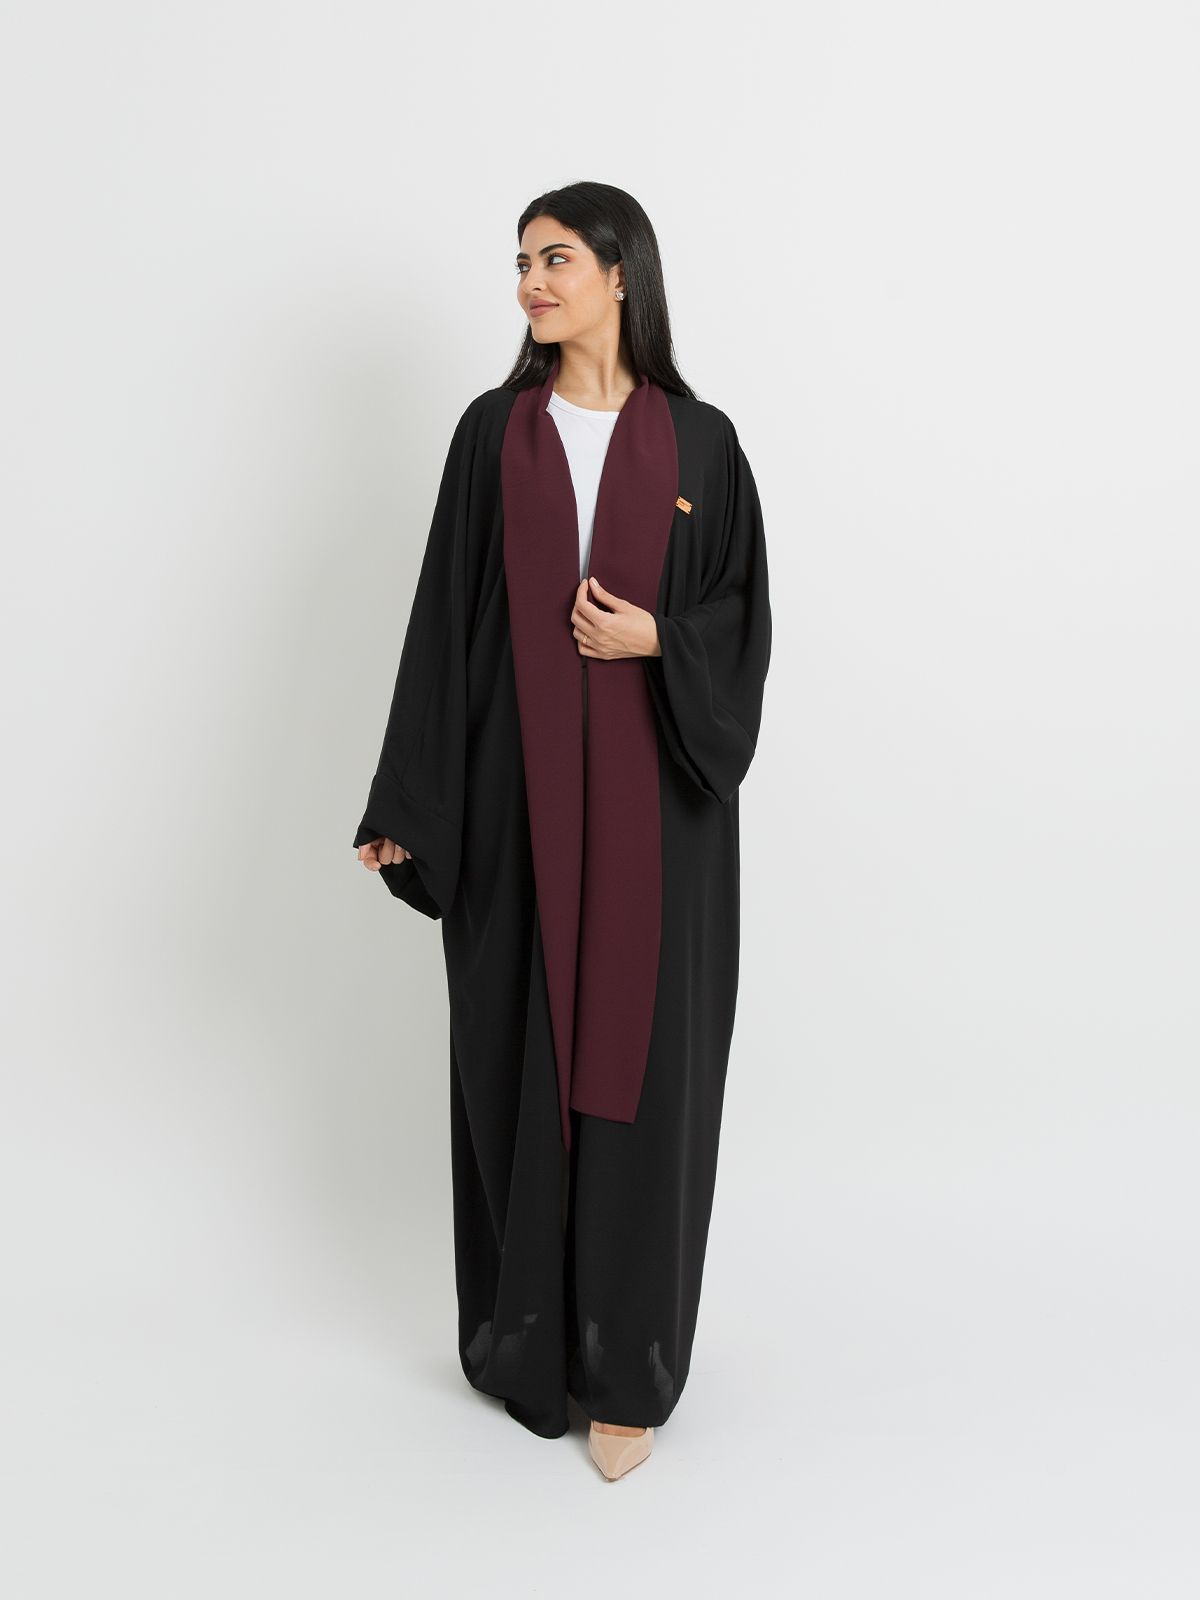 Black with Maroon- FlowStyle